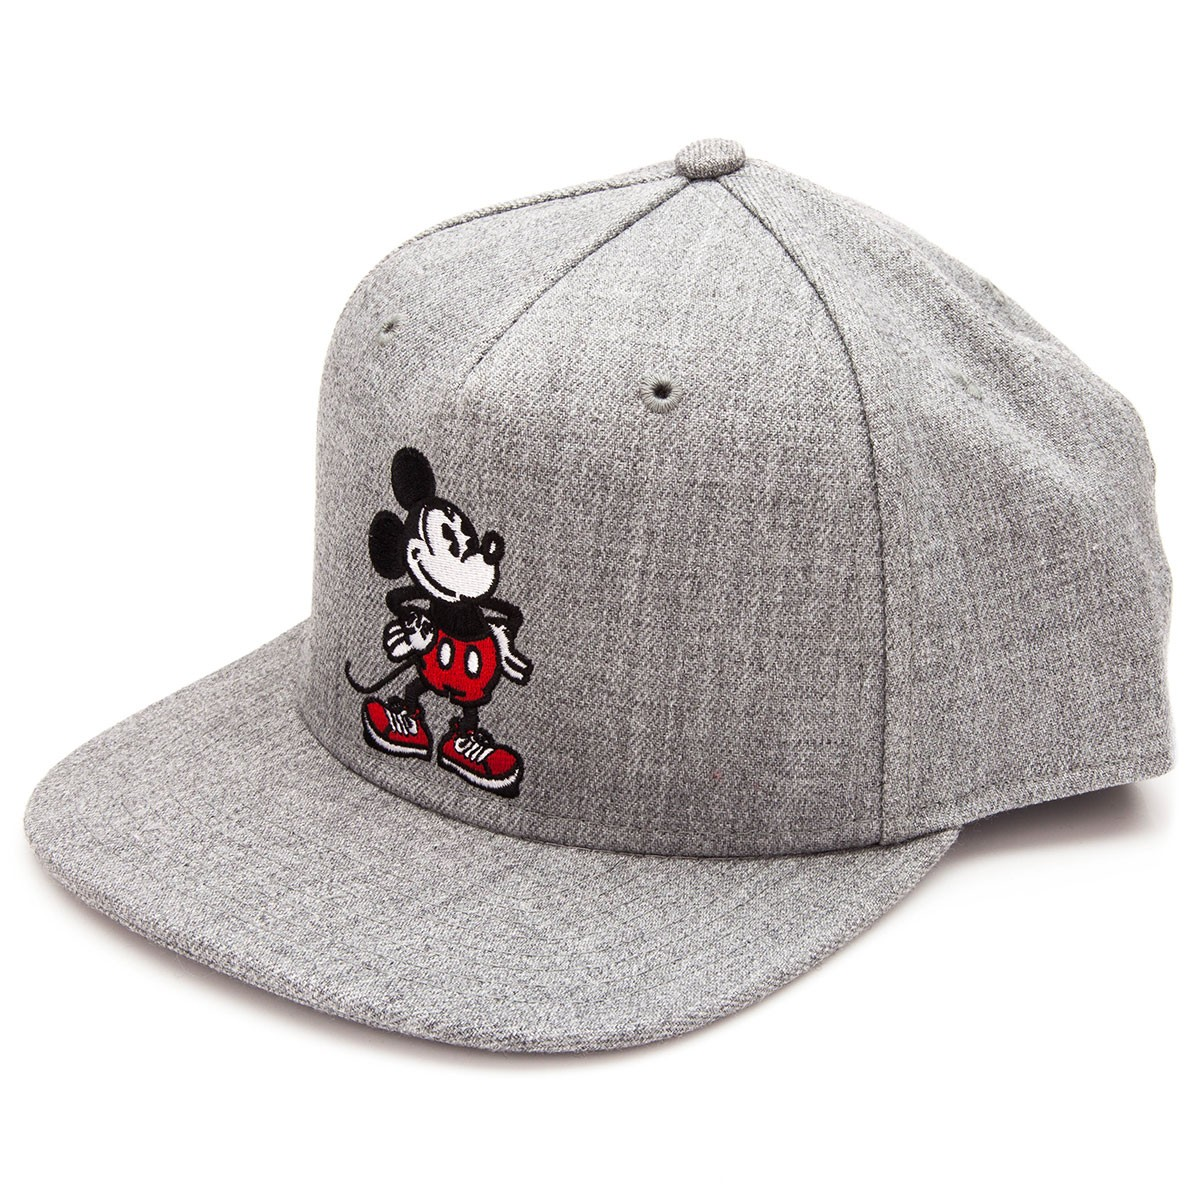 Vans Mickey Mouse Snapback Hat Mickey Mouse